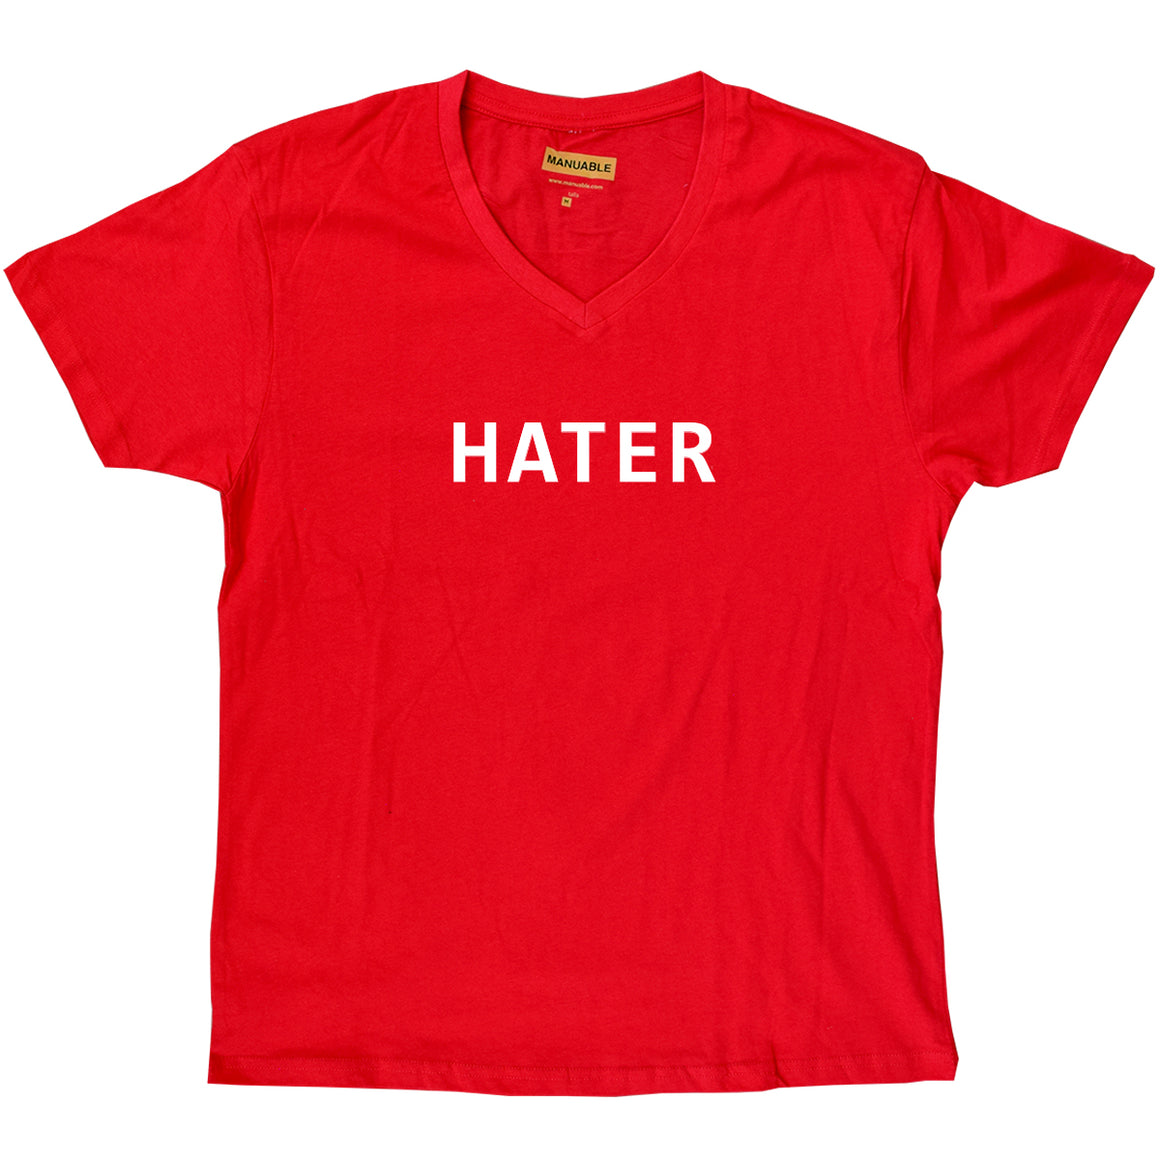 Playera Hater - Guy